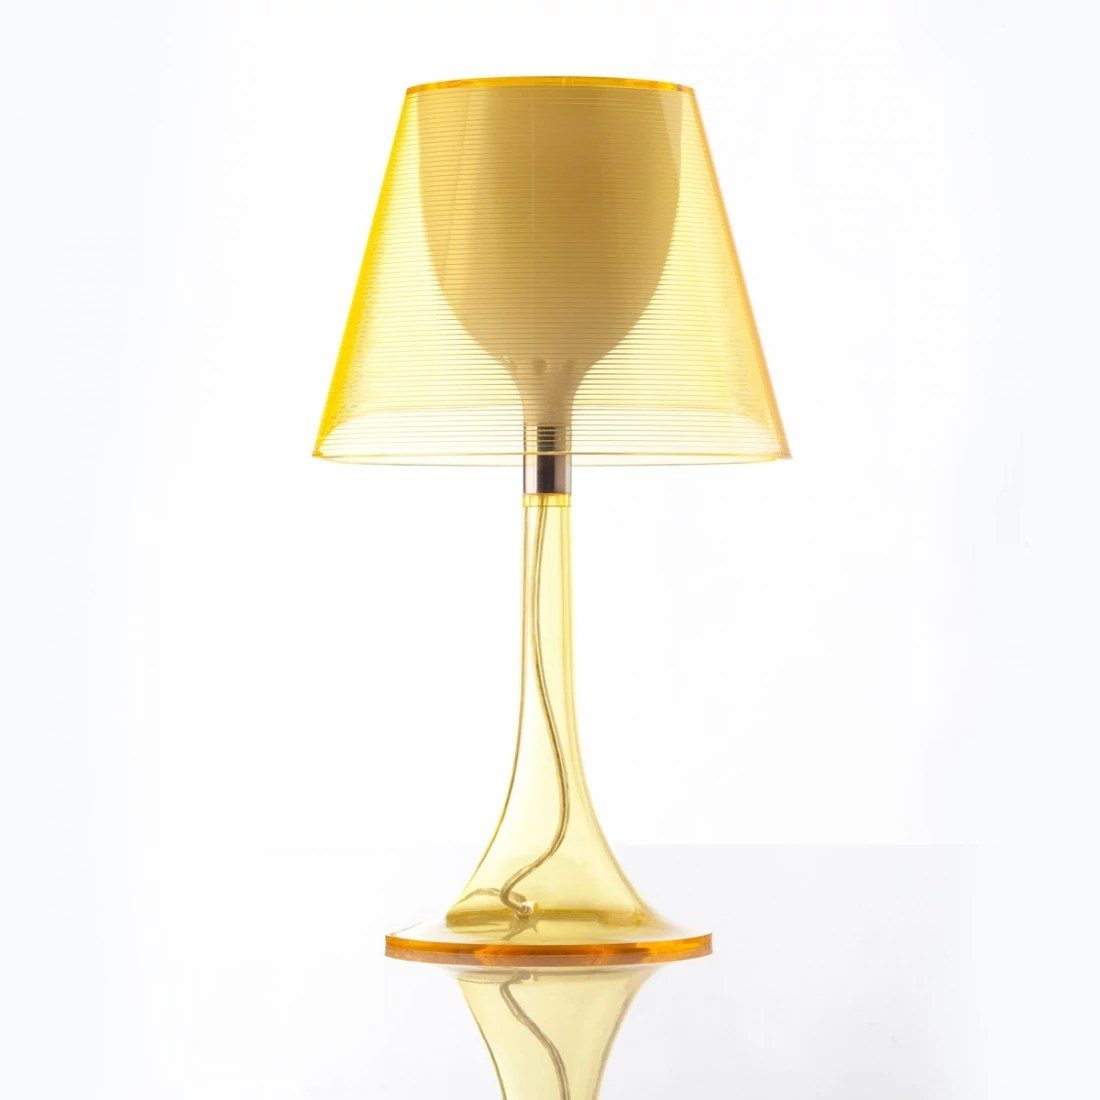 Lampe De Designer Lampe De Table Design Becool